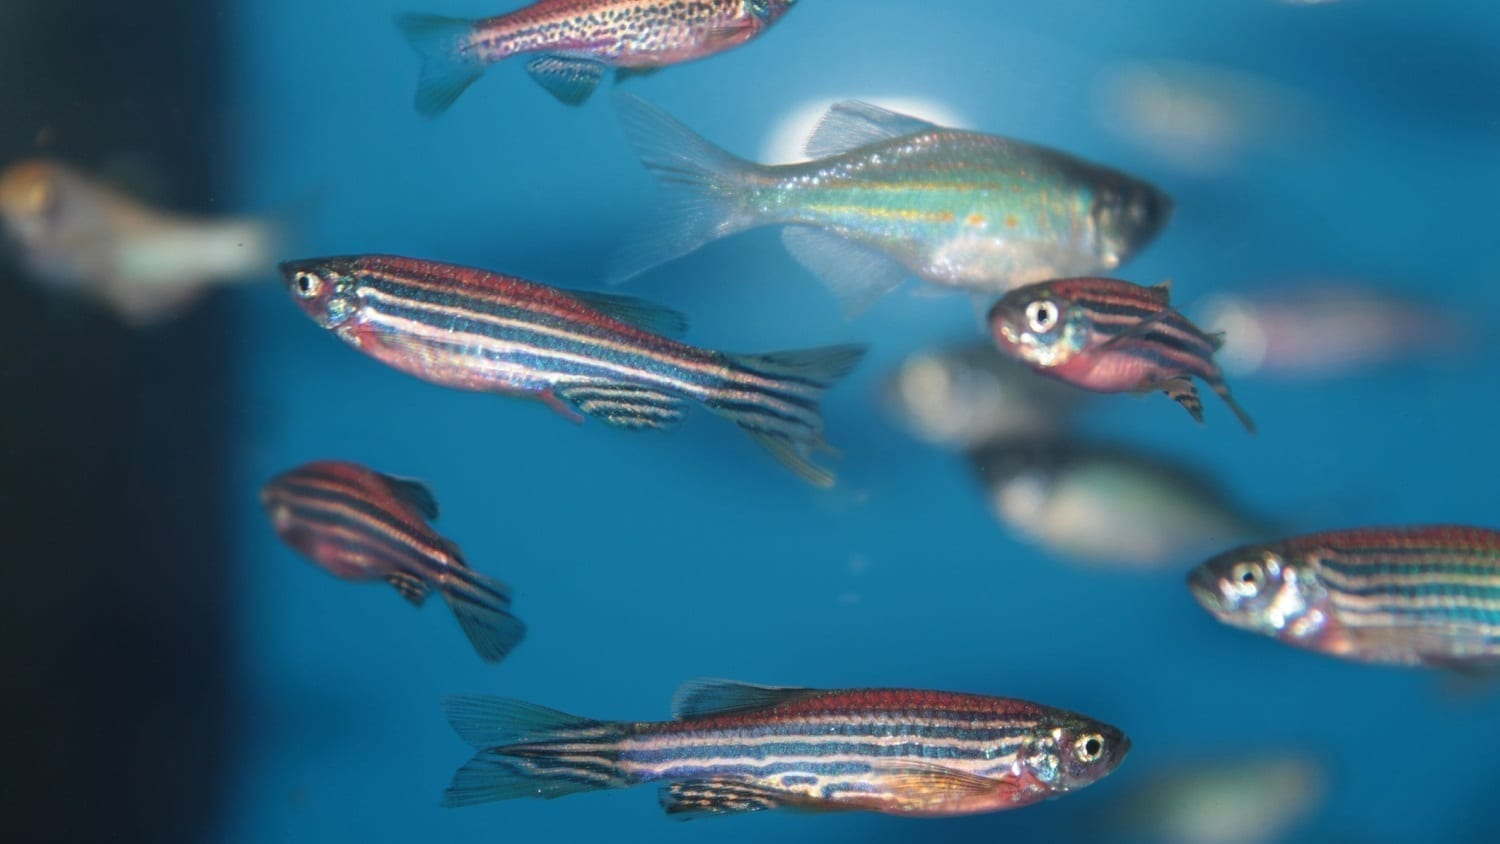 Zebrafish: Photo 37272613 © Kazakovmaksim | Dreamstime.com